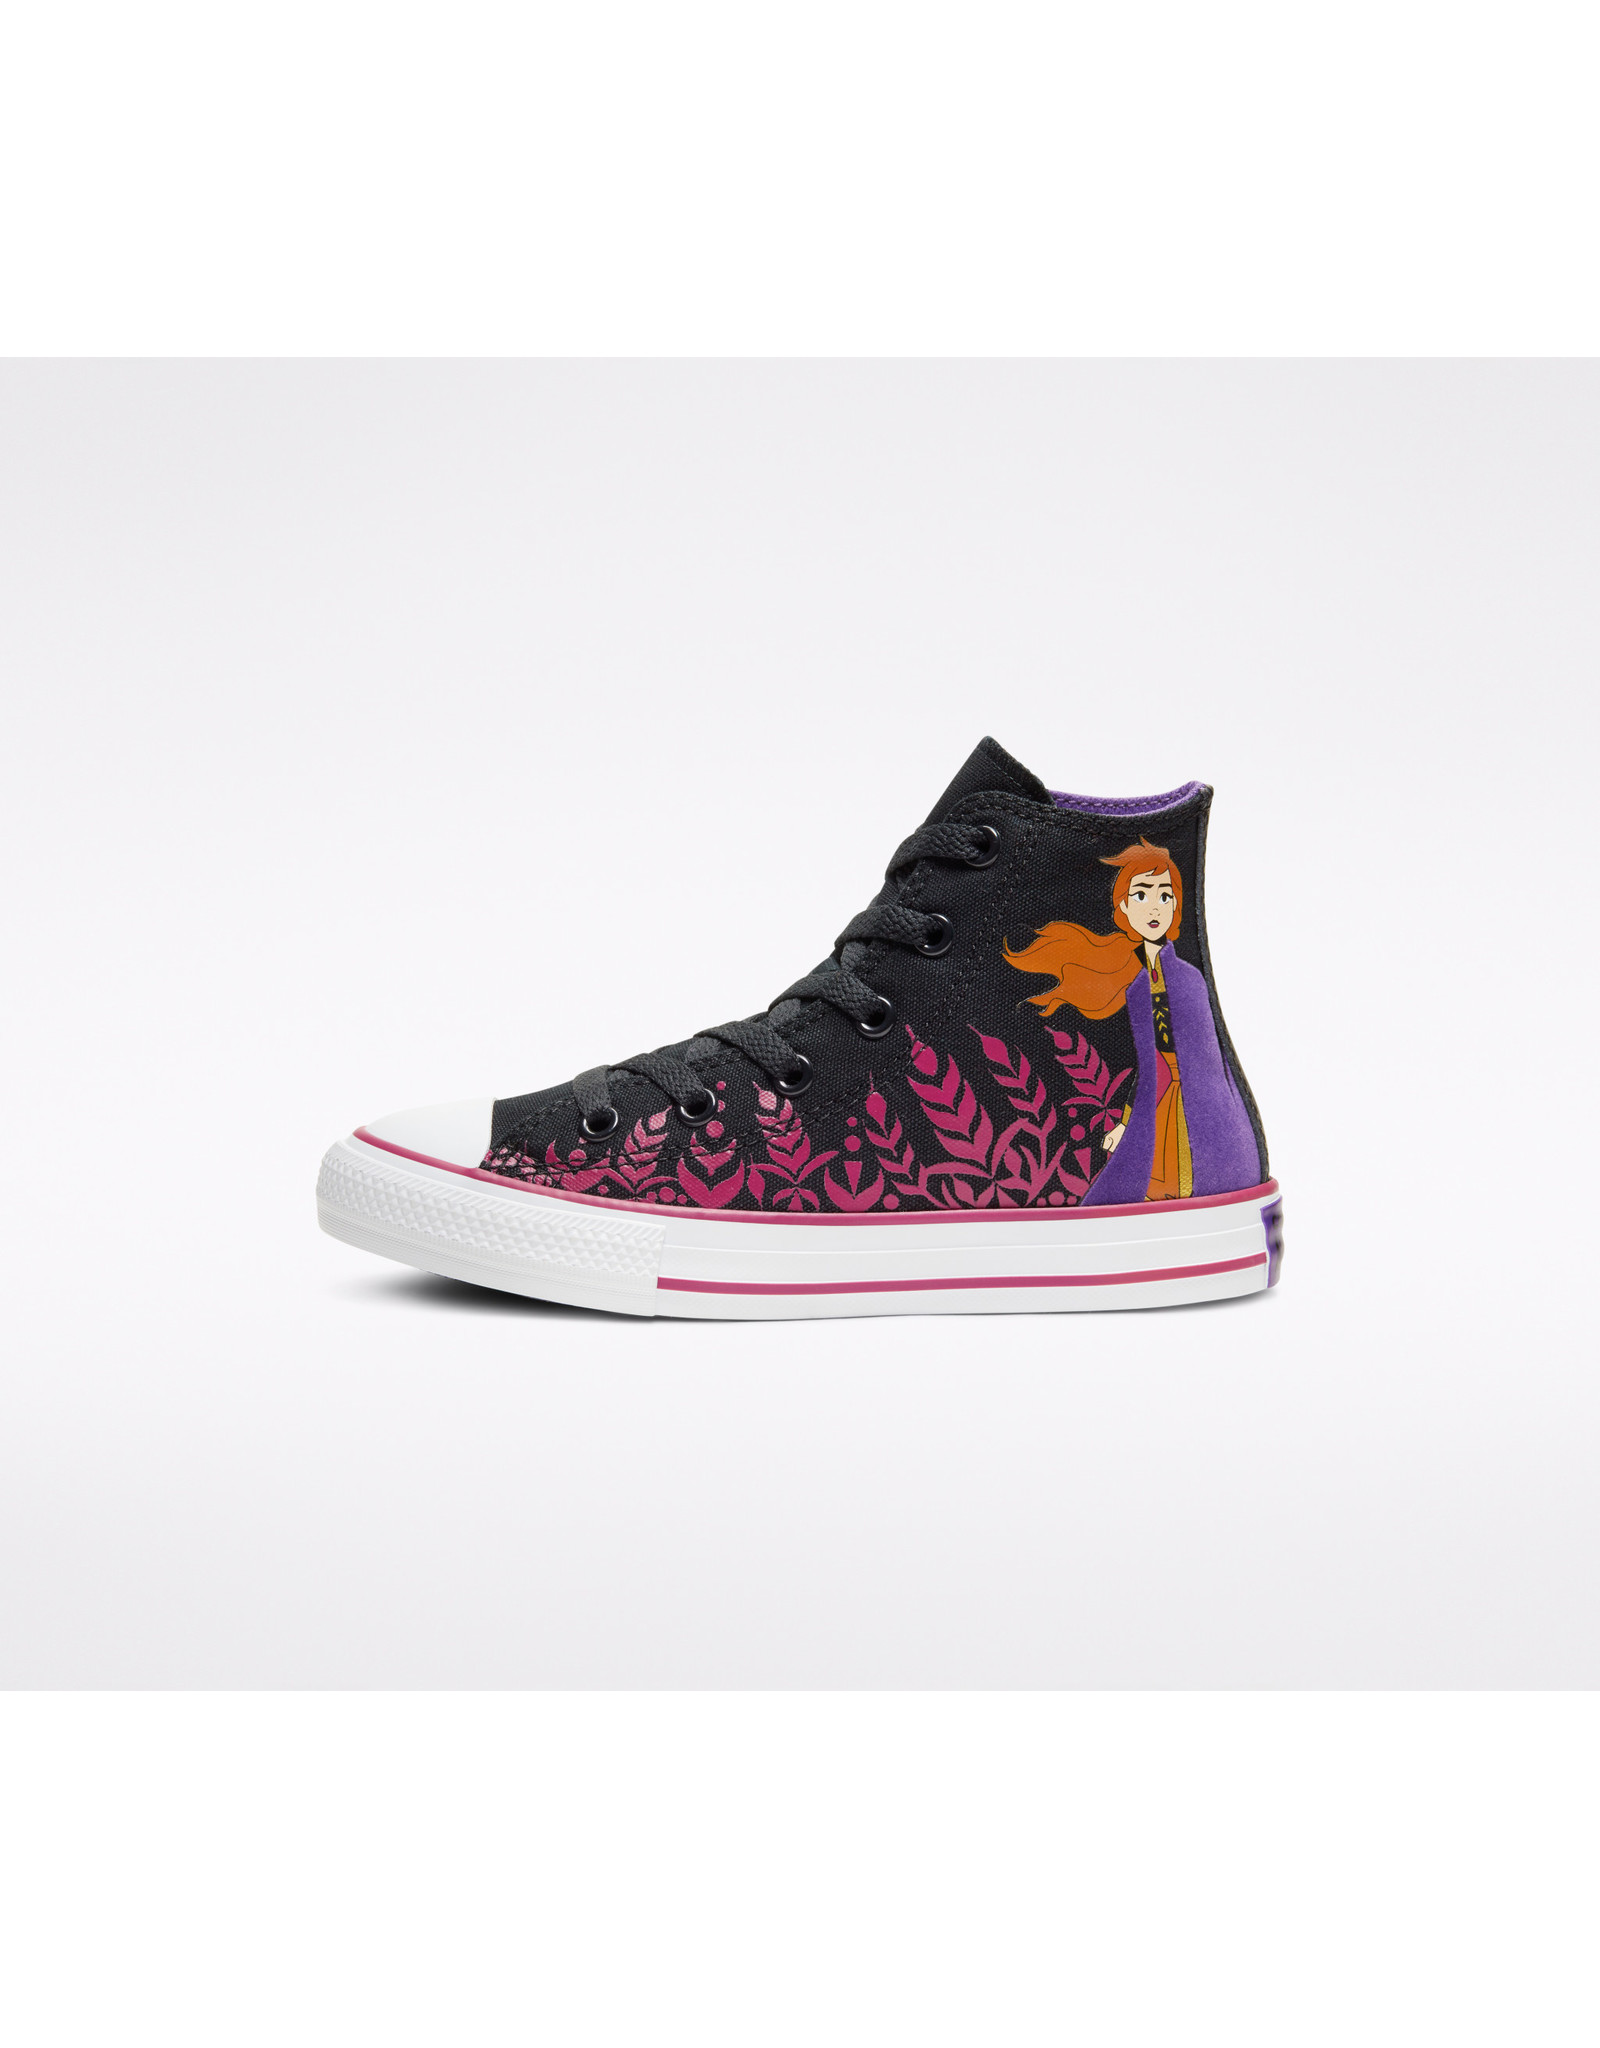 CONVERSE CHUCK TAYLOR ALL STAR HI FROZEN 2 BLACK/CHERRIES JUBILEE/WHITE CZFZJ-667355C